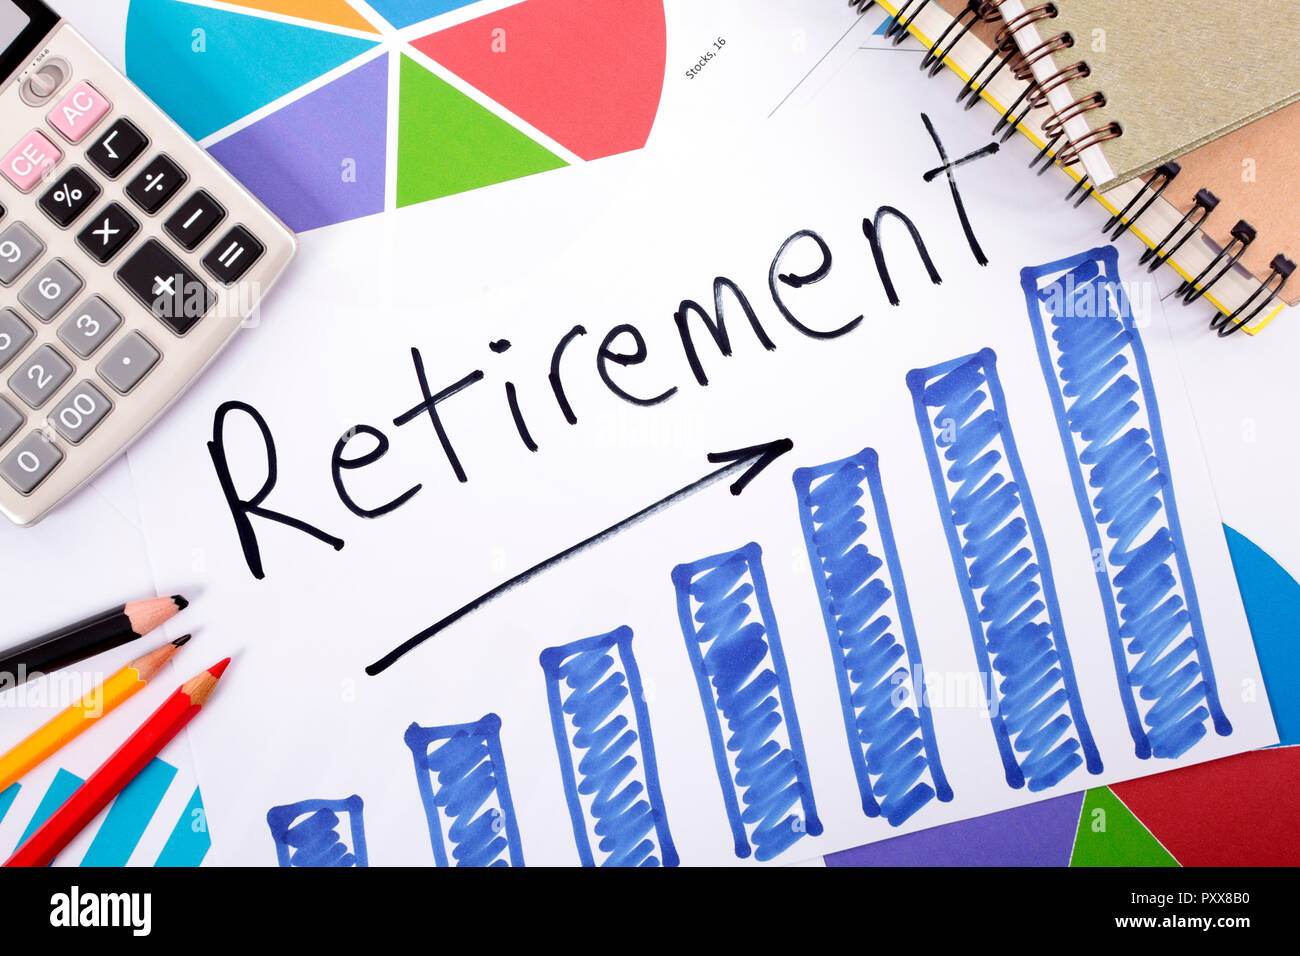 the word retirement written on a hand drawn bar chart surrounded by